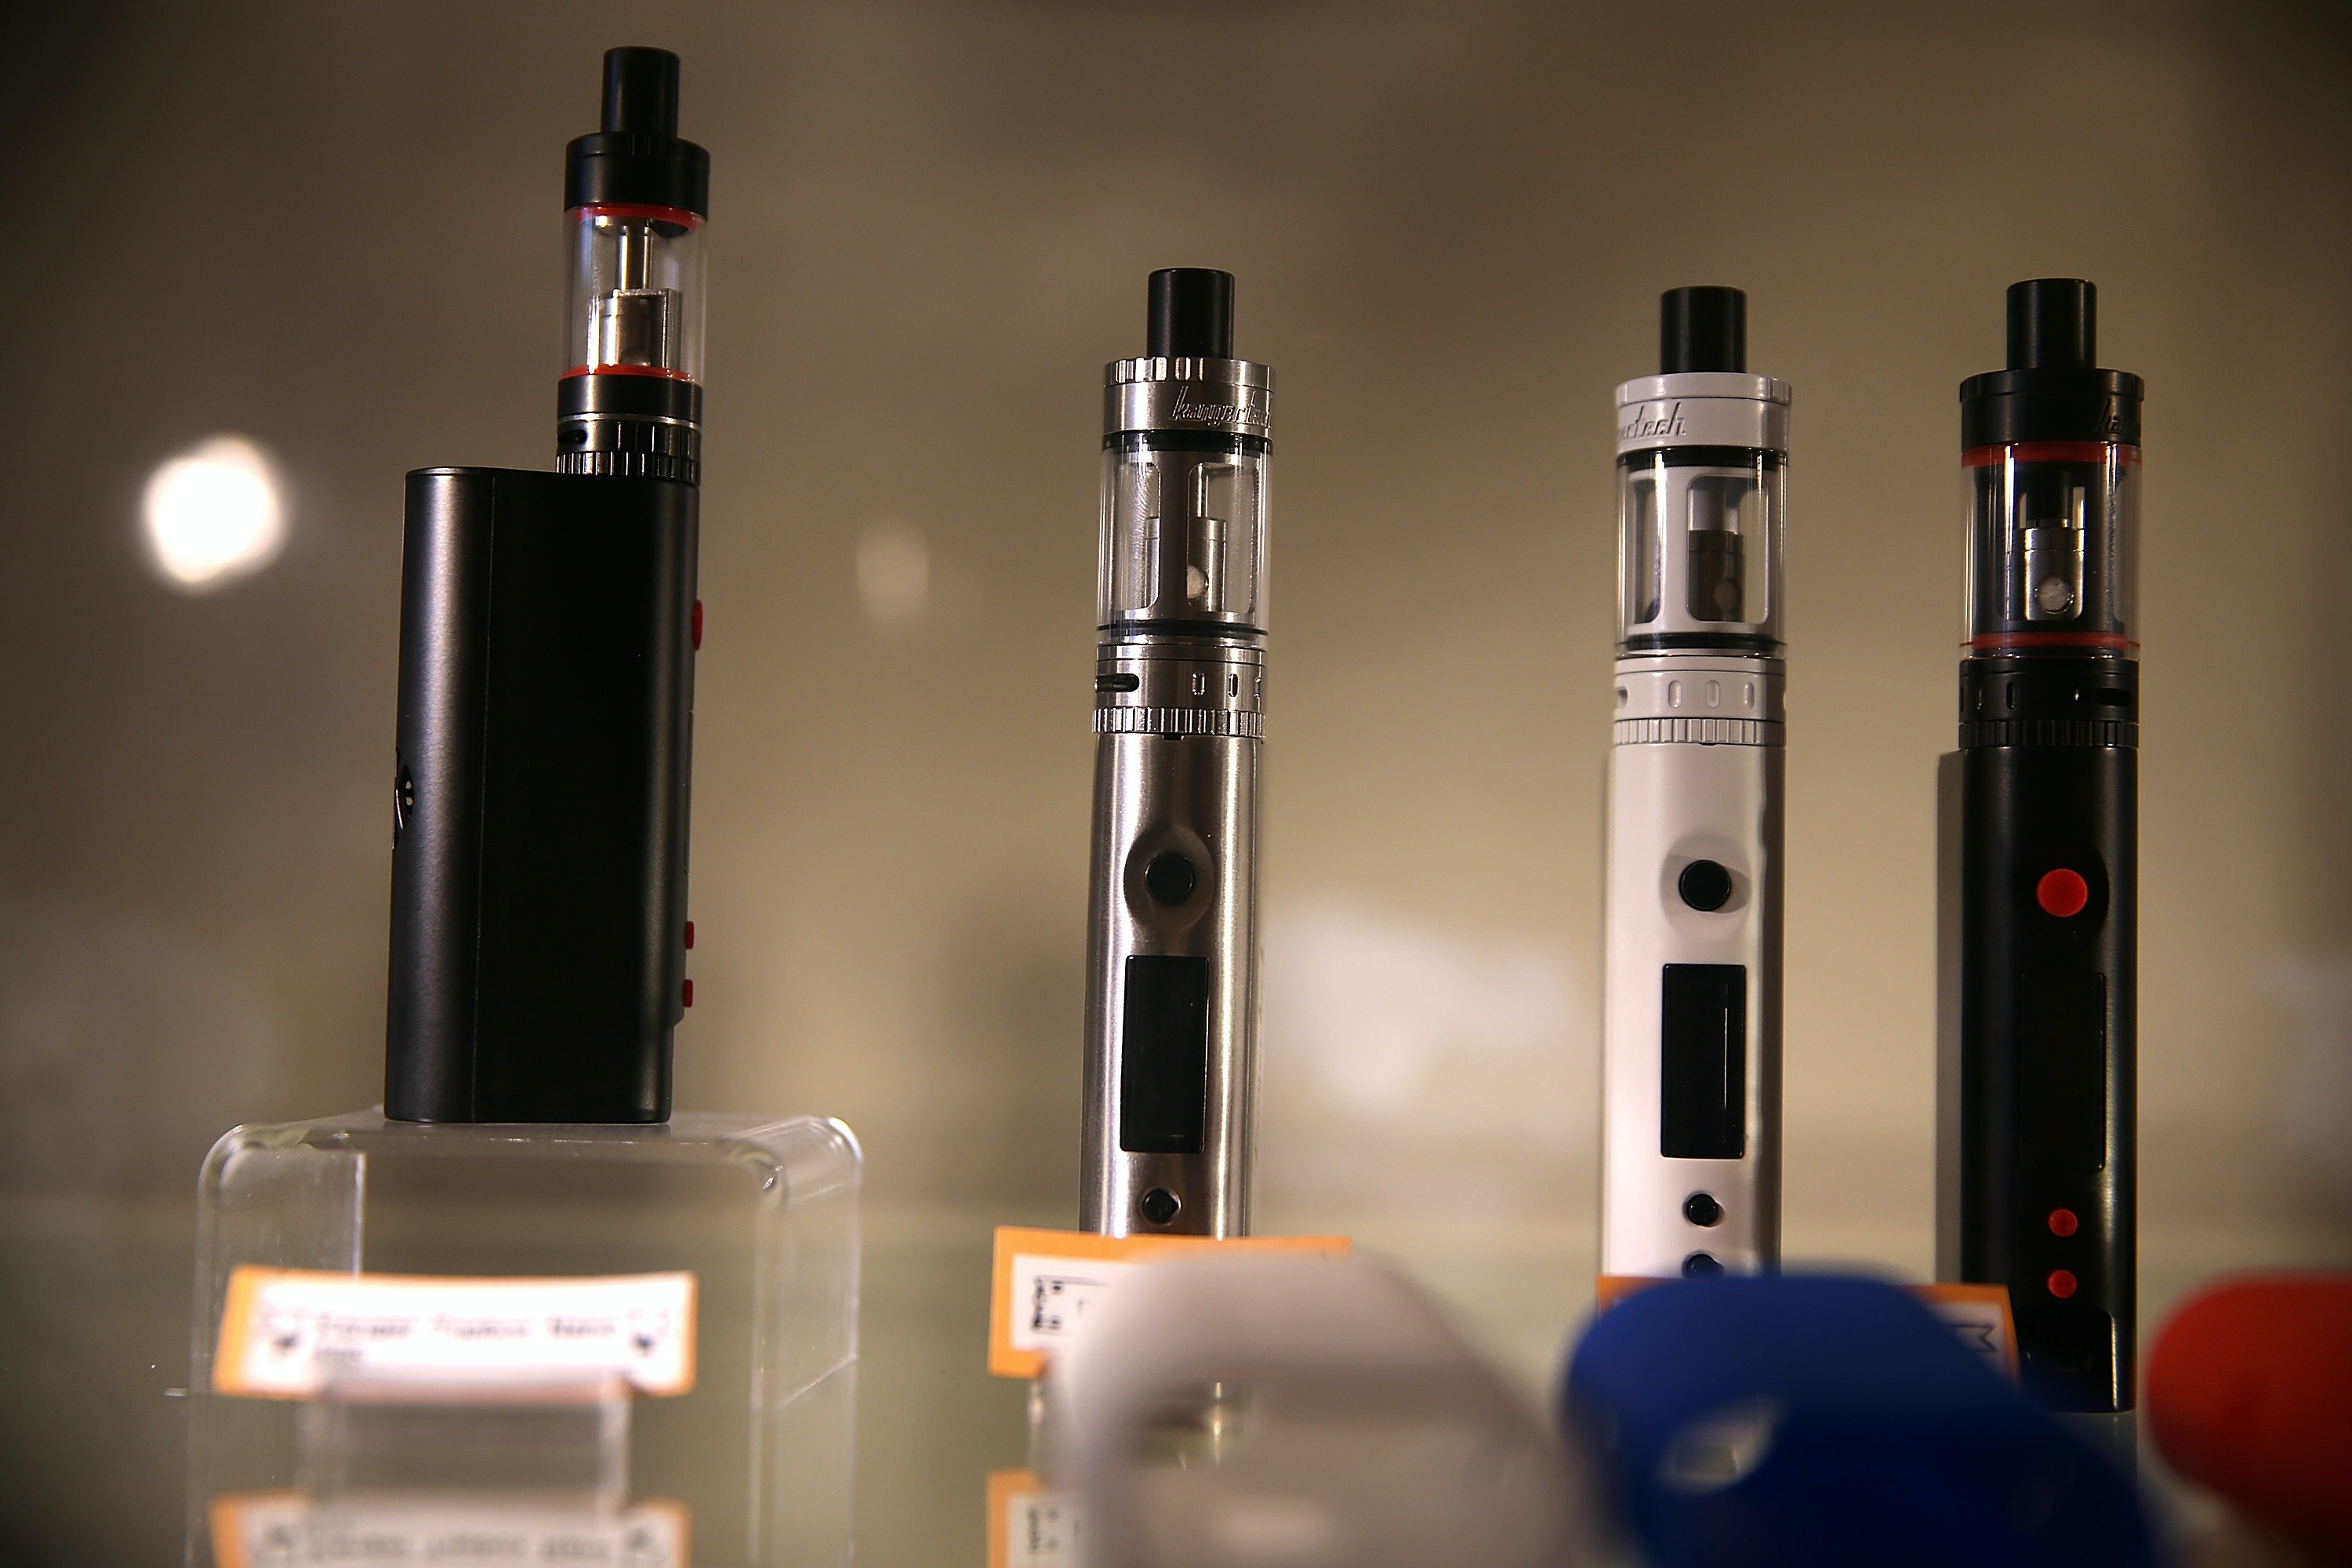 These Are The 7 Most Toxic <b>Vaping Flavors</b>, According To Science